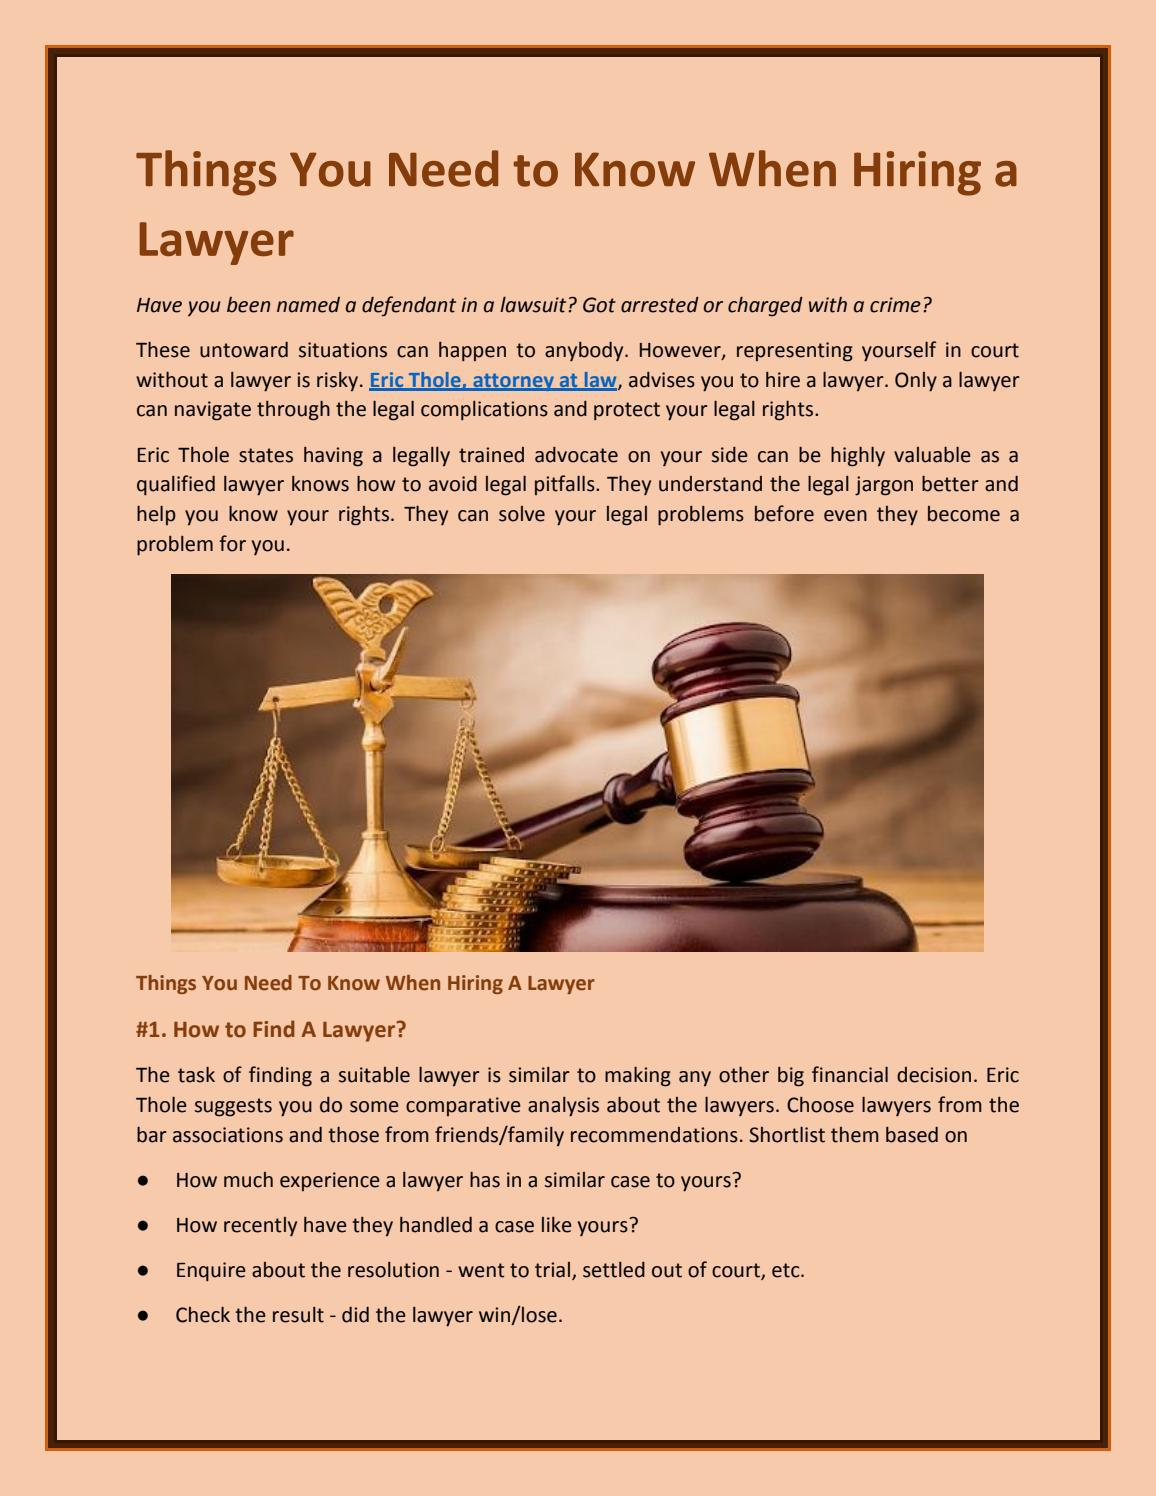 Things You Need to Know When Hiring a Lawye by ericthole - Issu